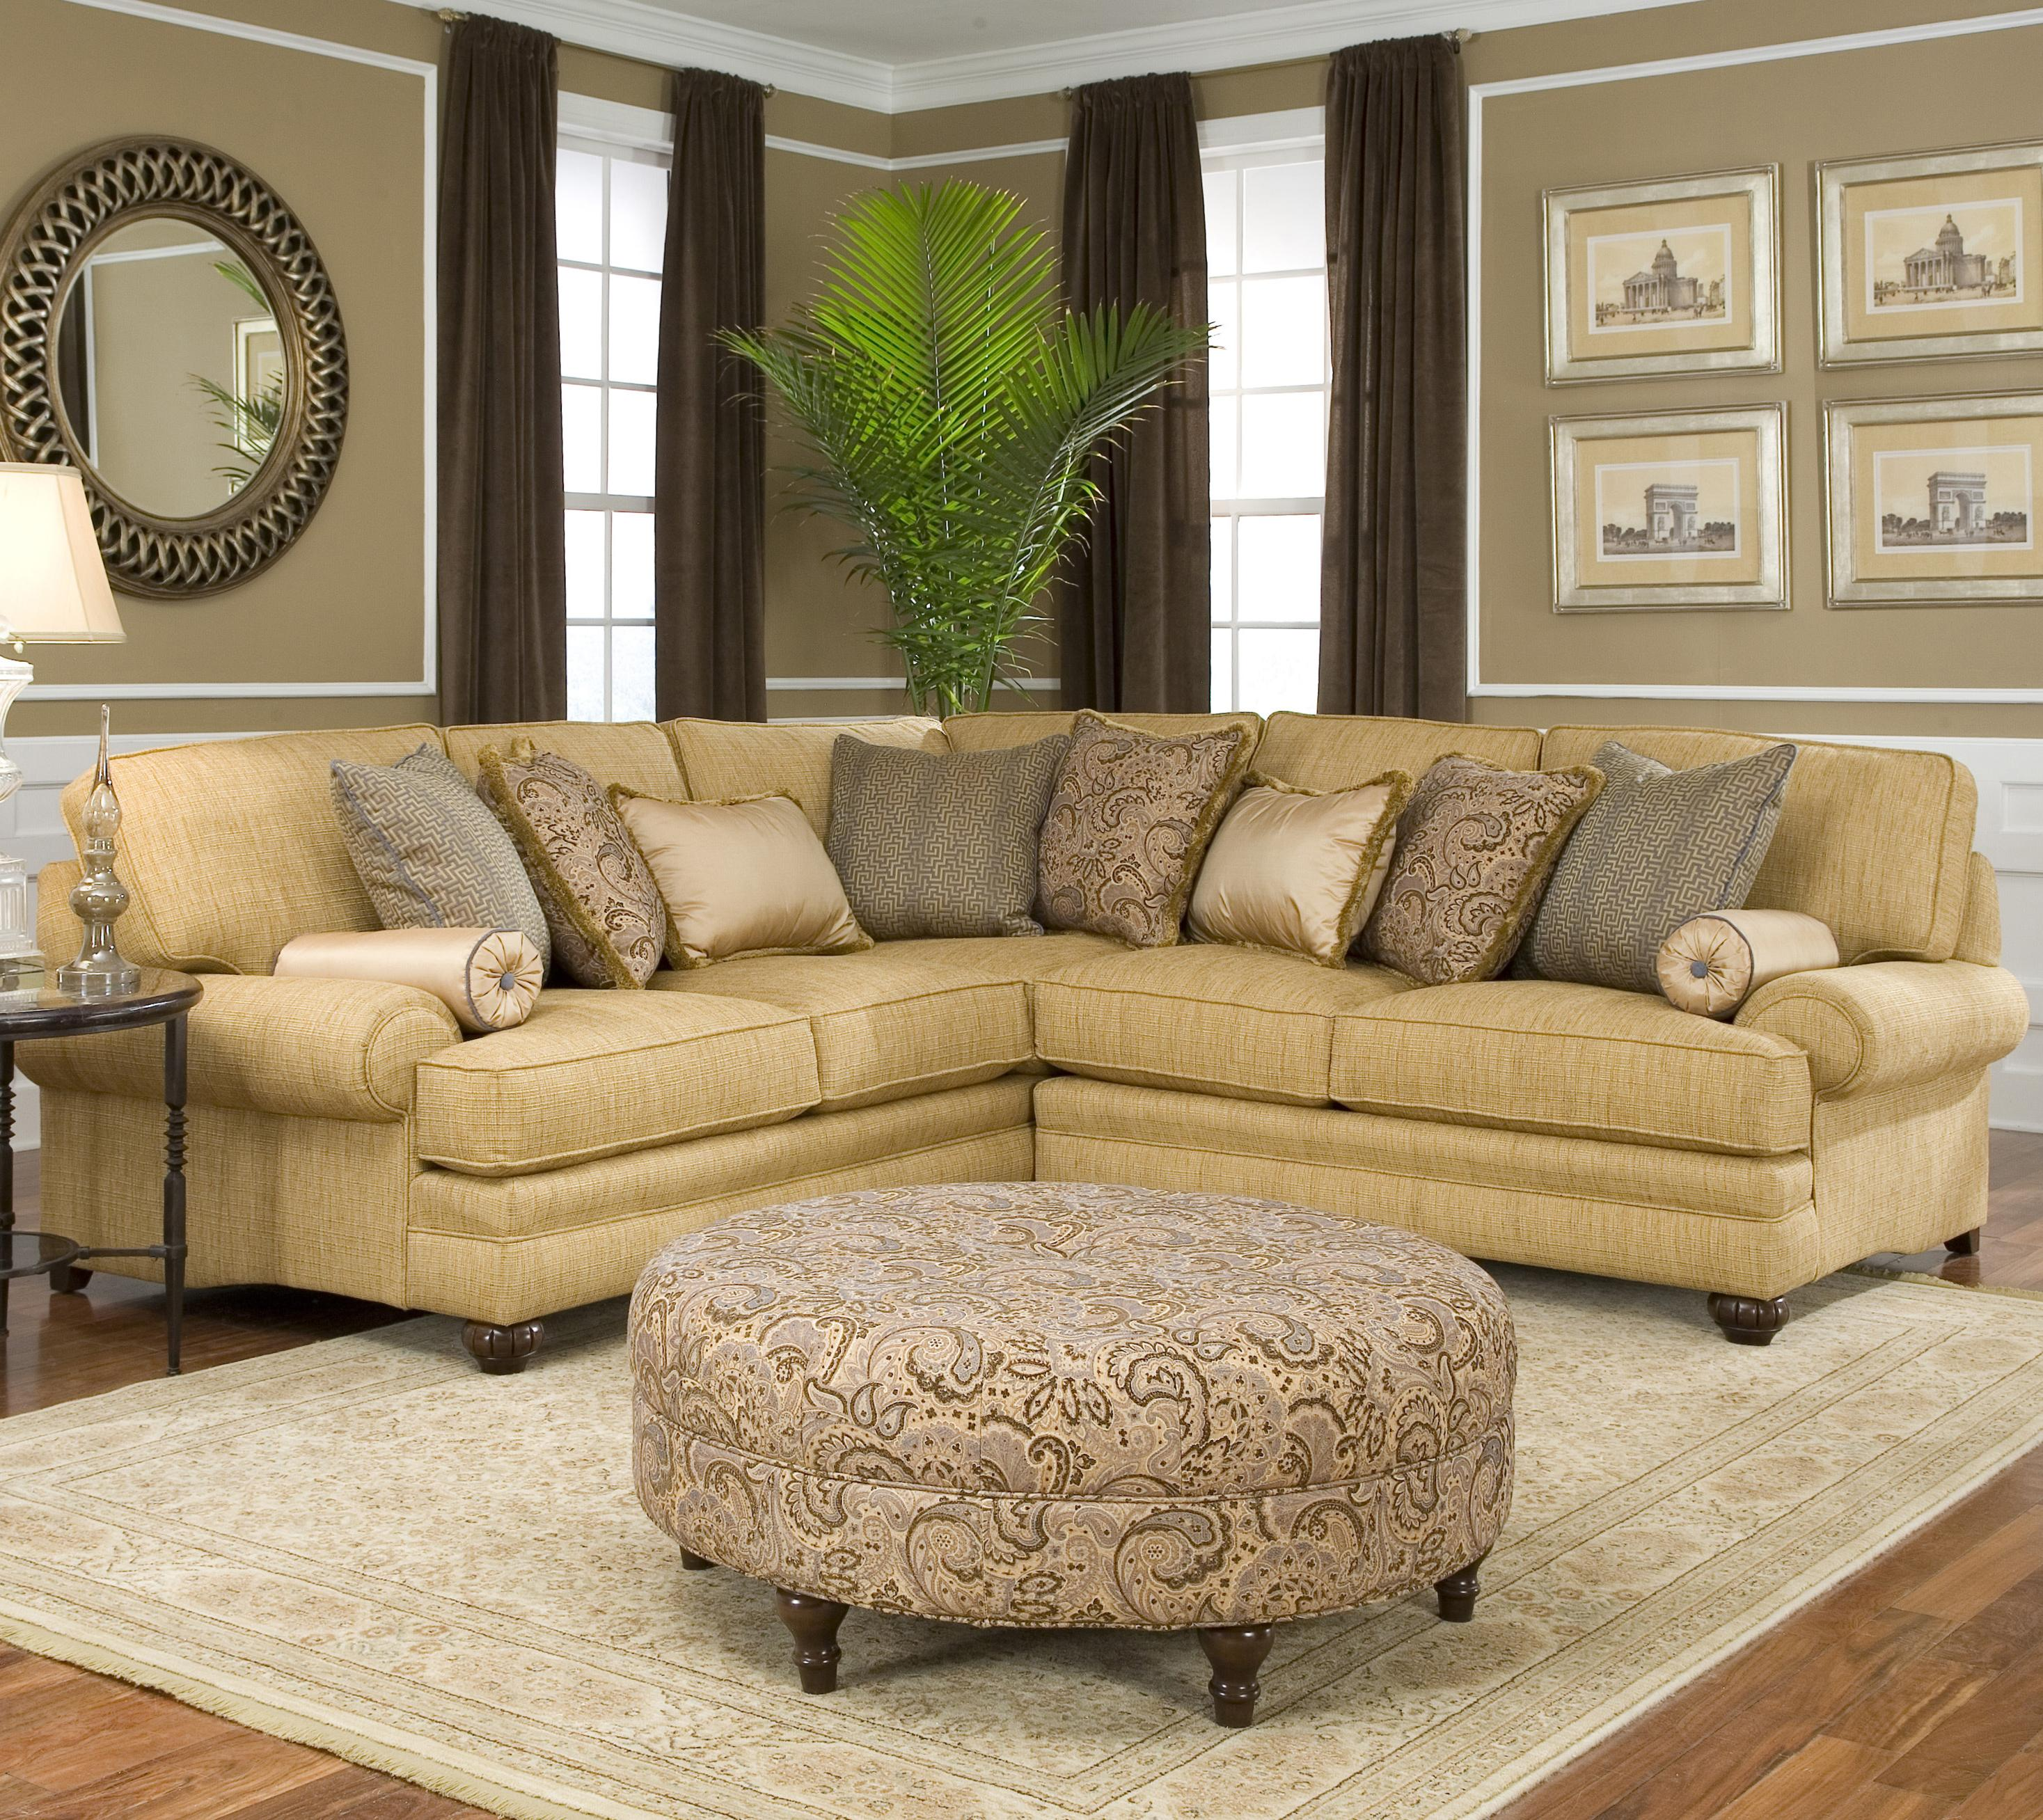 Living Room Ideas With Leather Sectional Wildwoodstacom